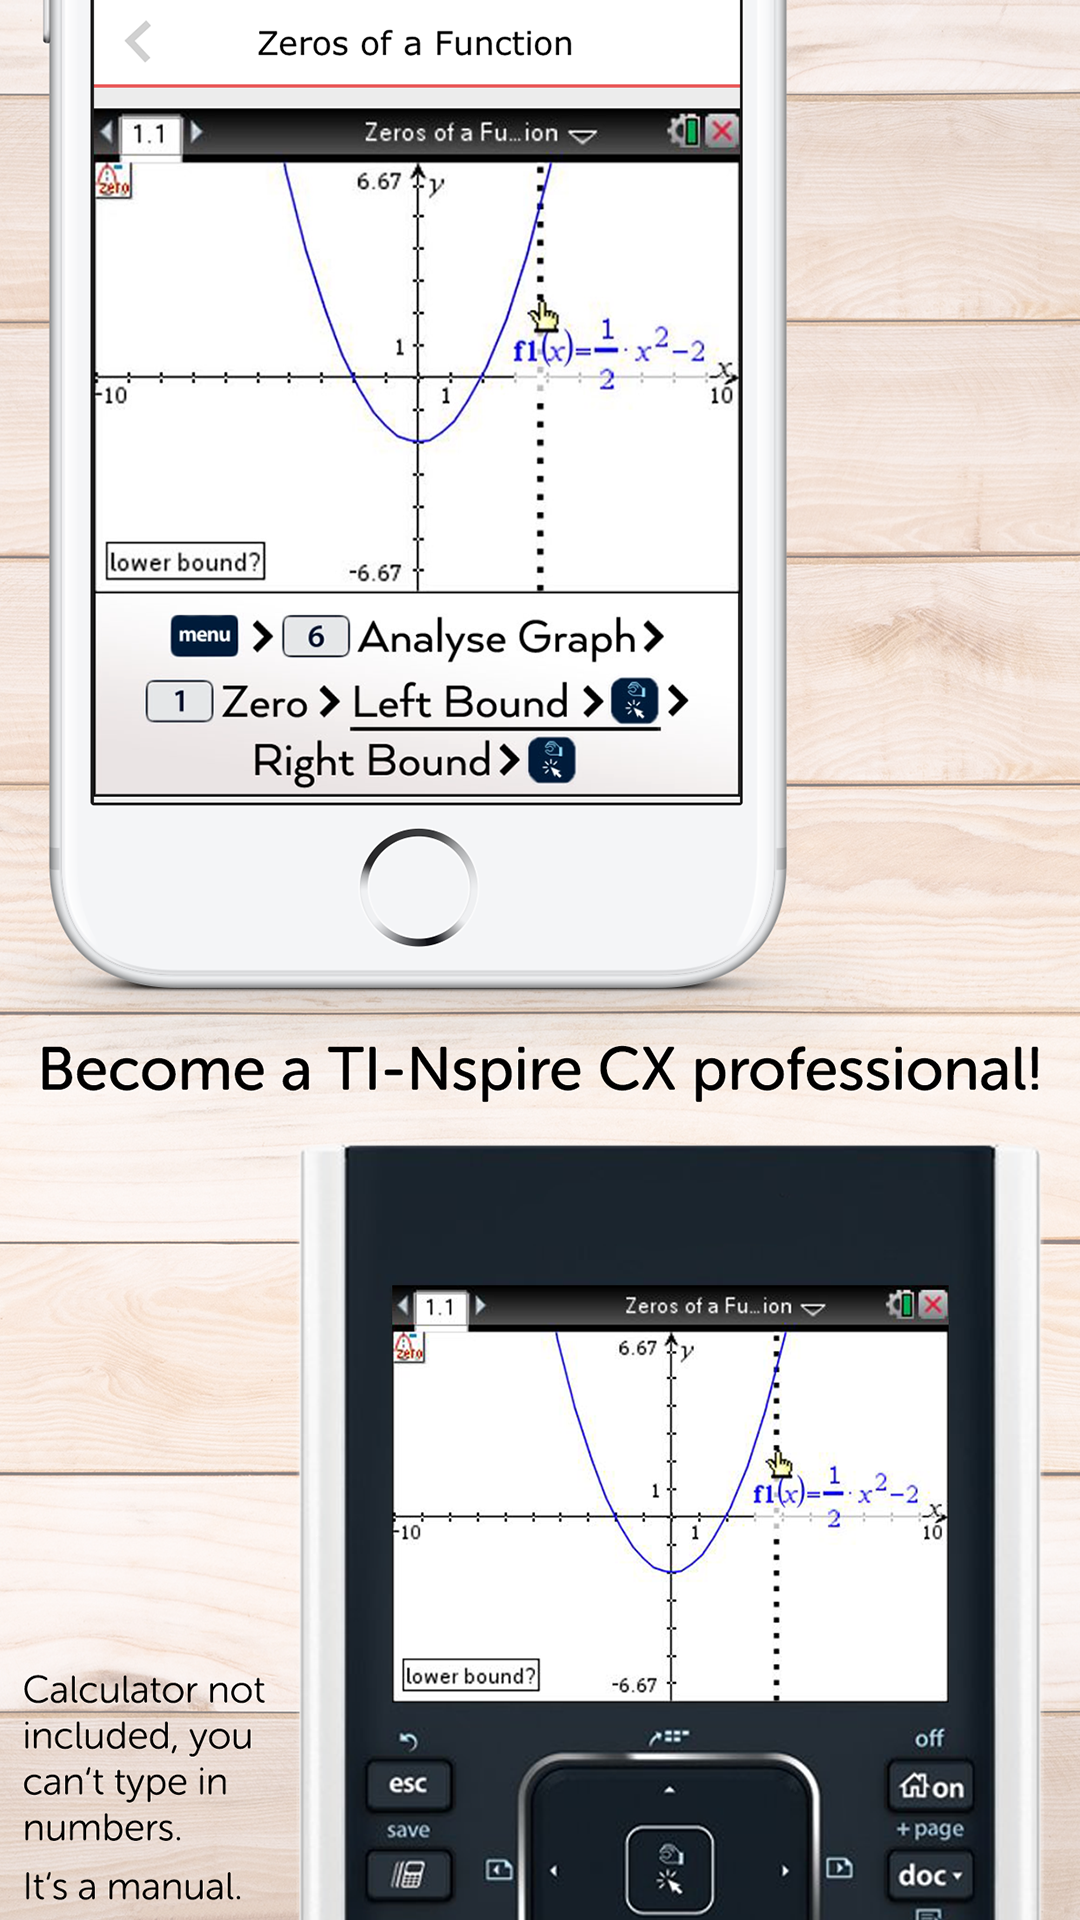 Amazon.com: Graphing Calculator Manual TI-Nspire CX: Appstore for Android